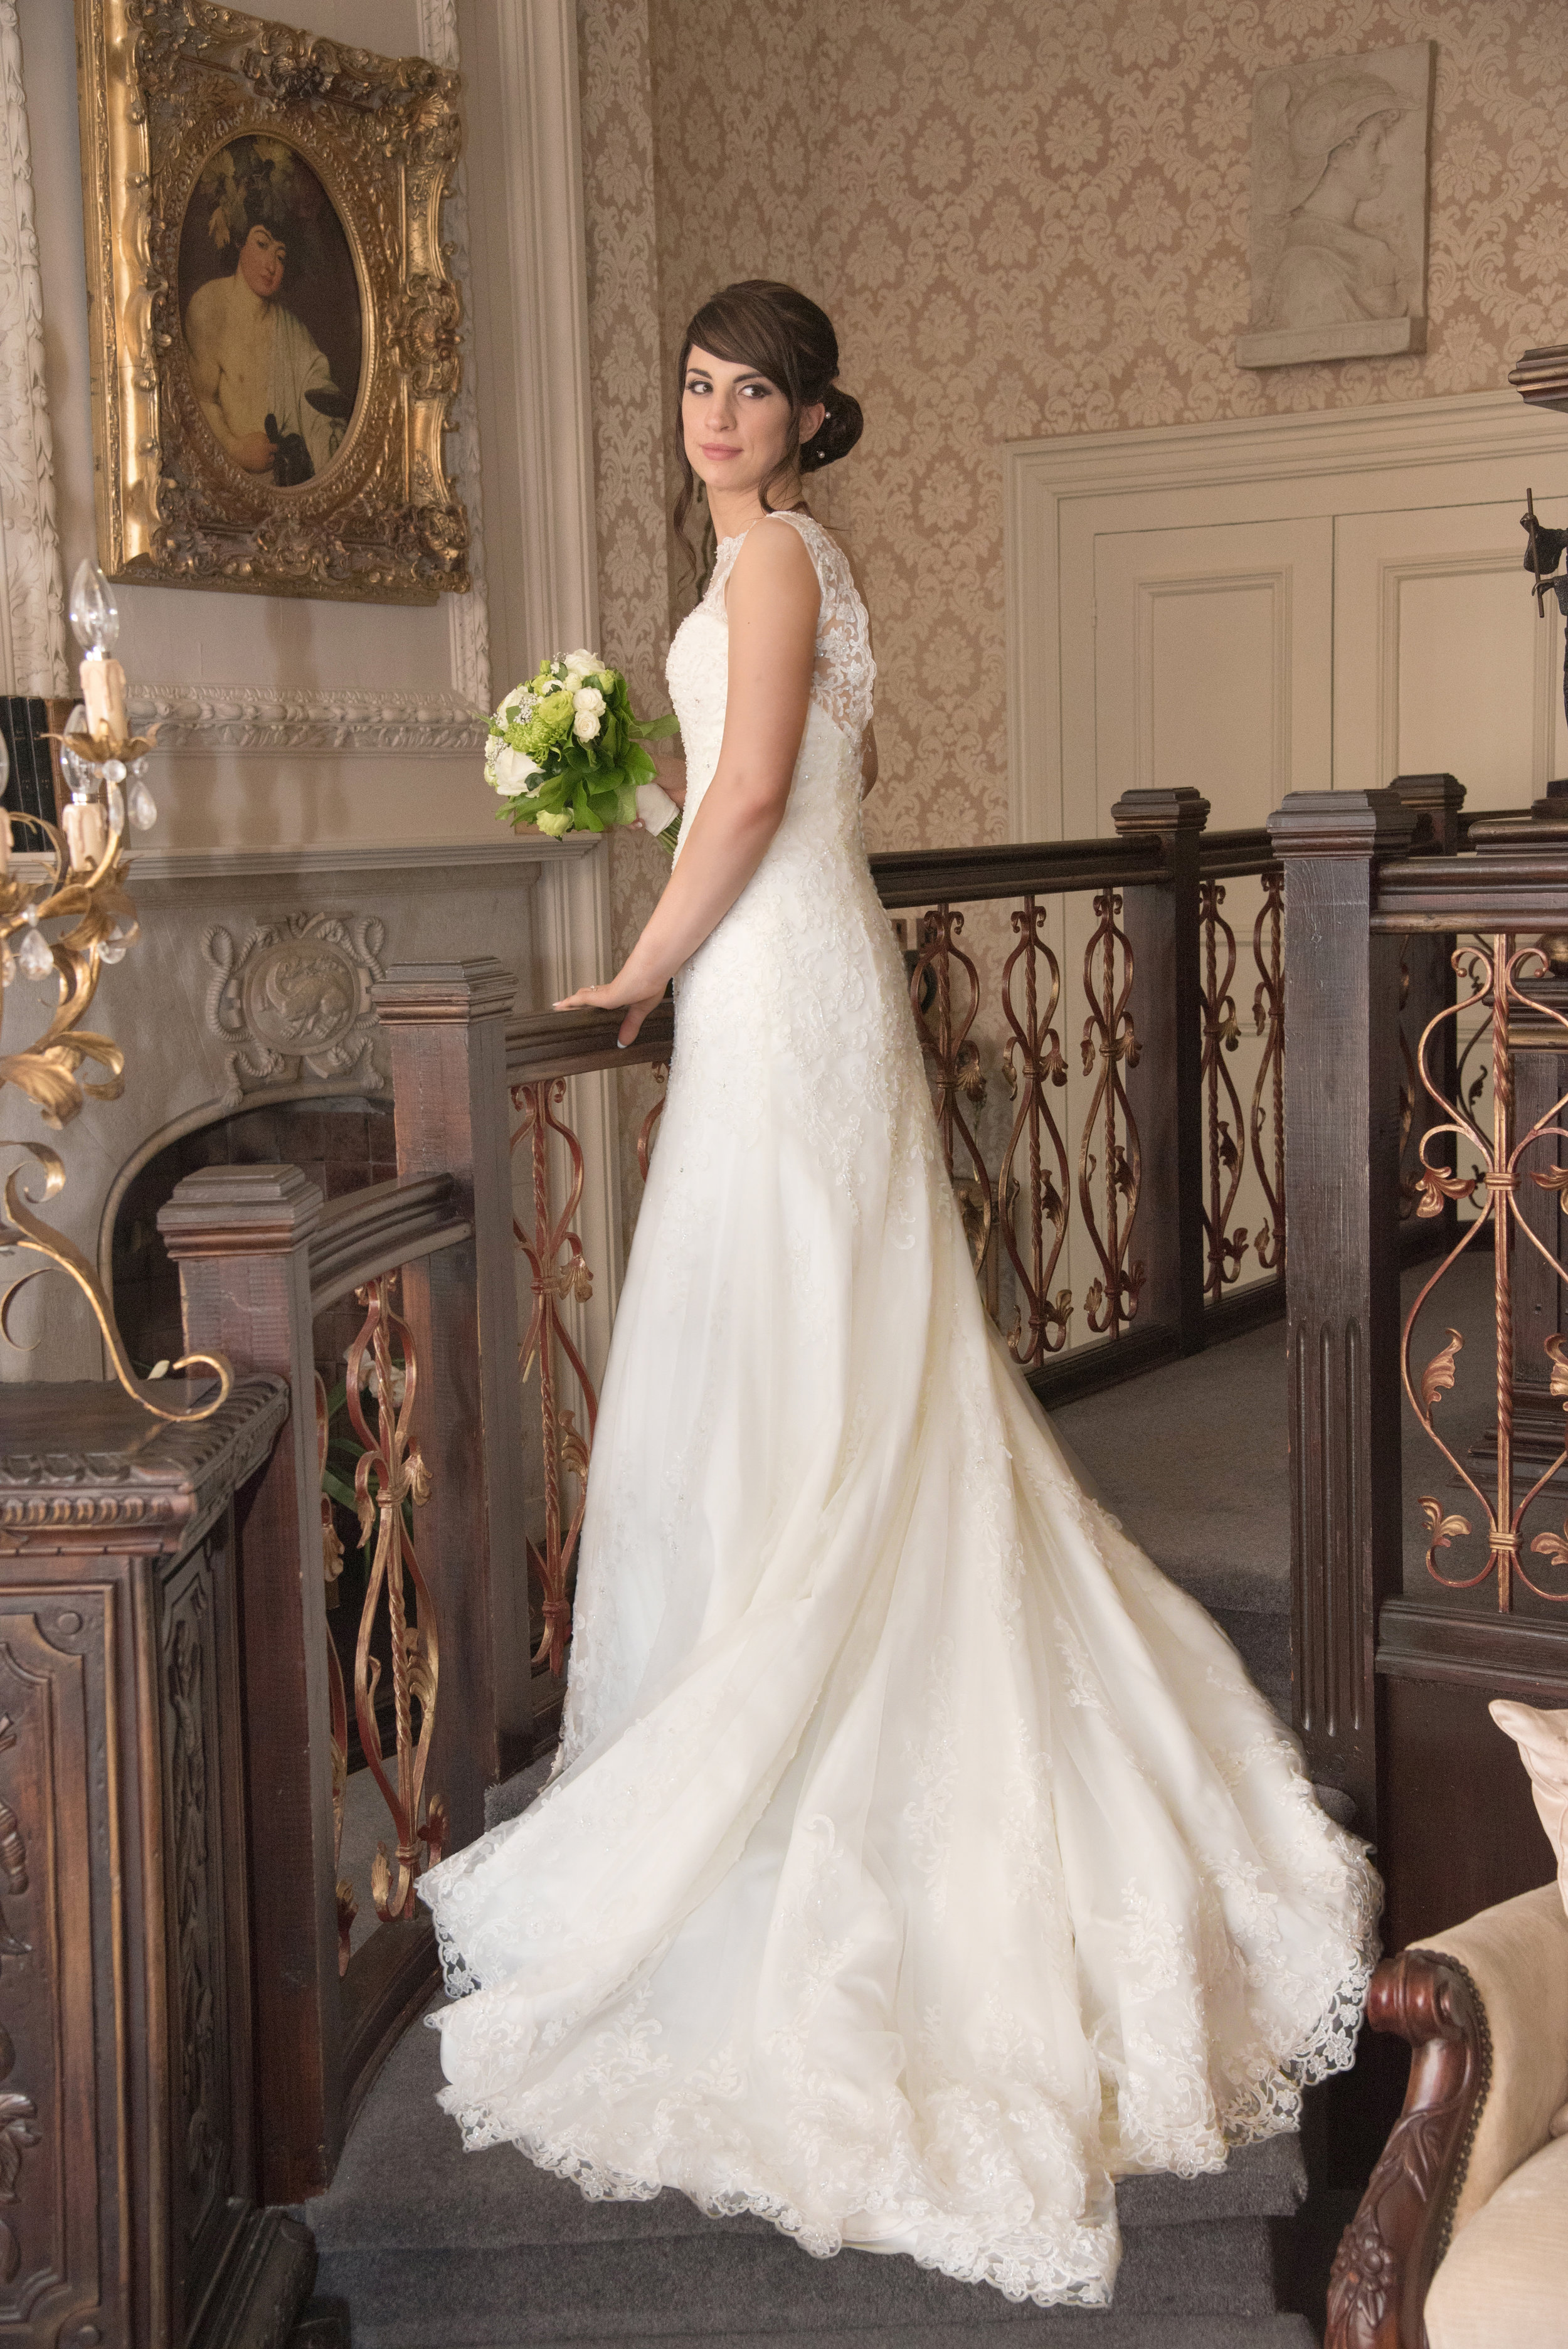 Bride in Bridal suite Coombe Abbey Hotel Coventry